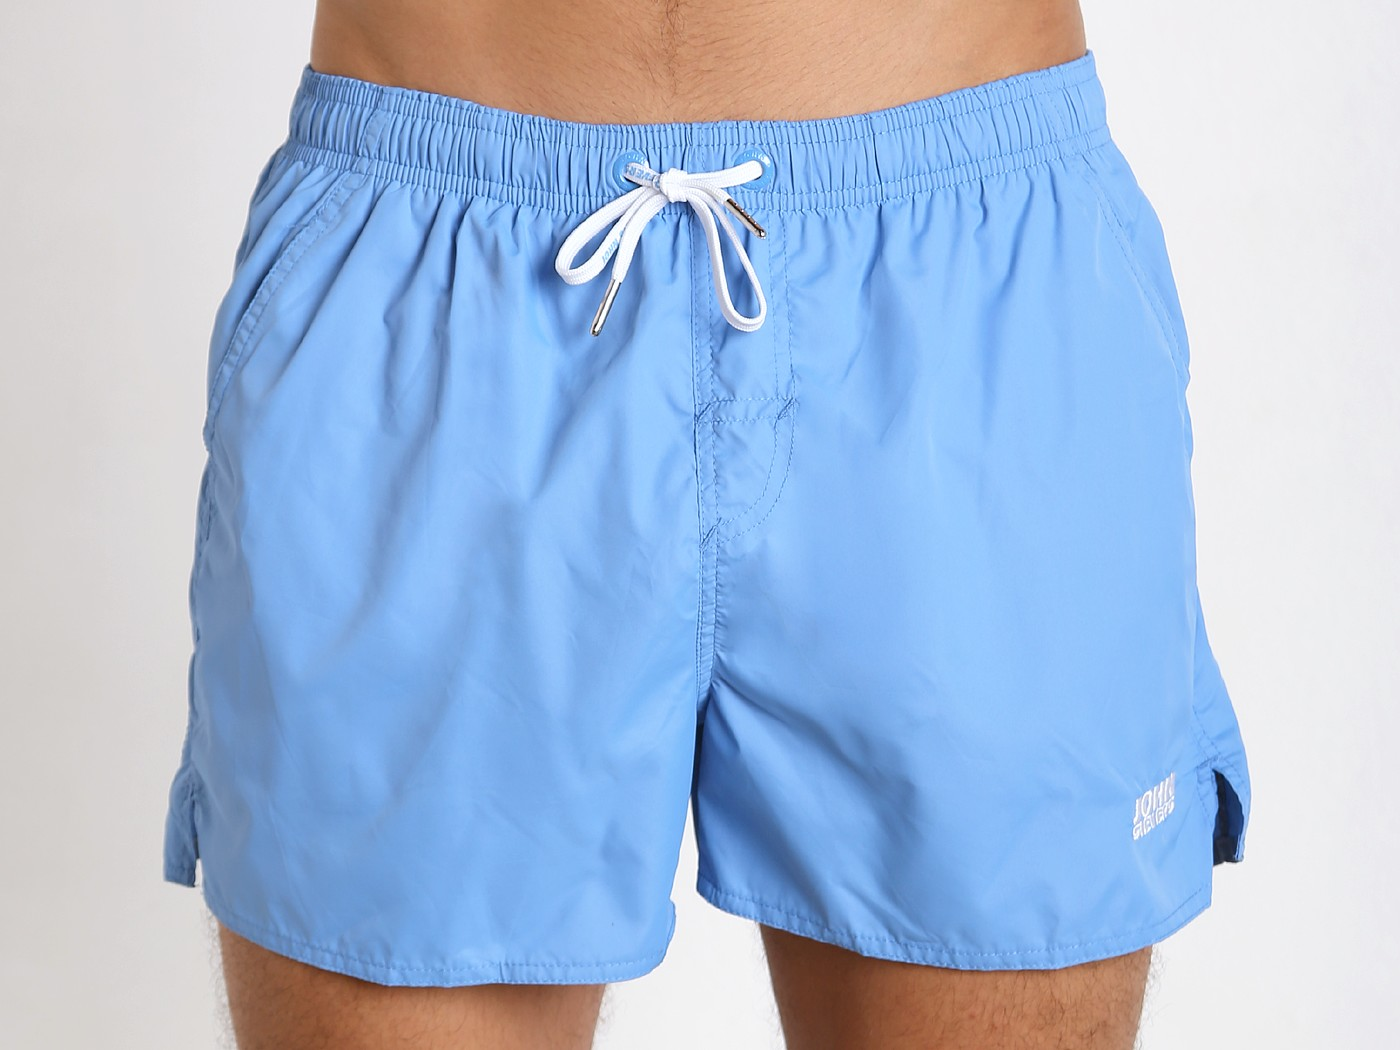 27c7284187c01 John Sievers Natural Pouch Swim Shorts Ice Blue 60460112-845 at  International Jock